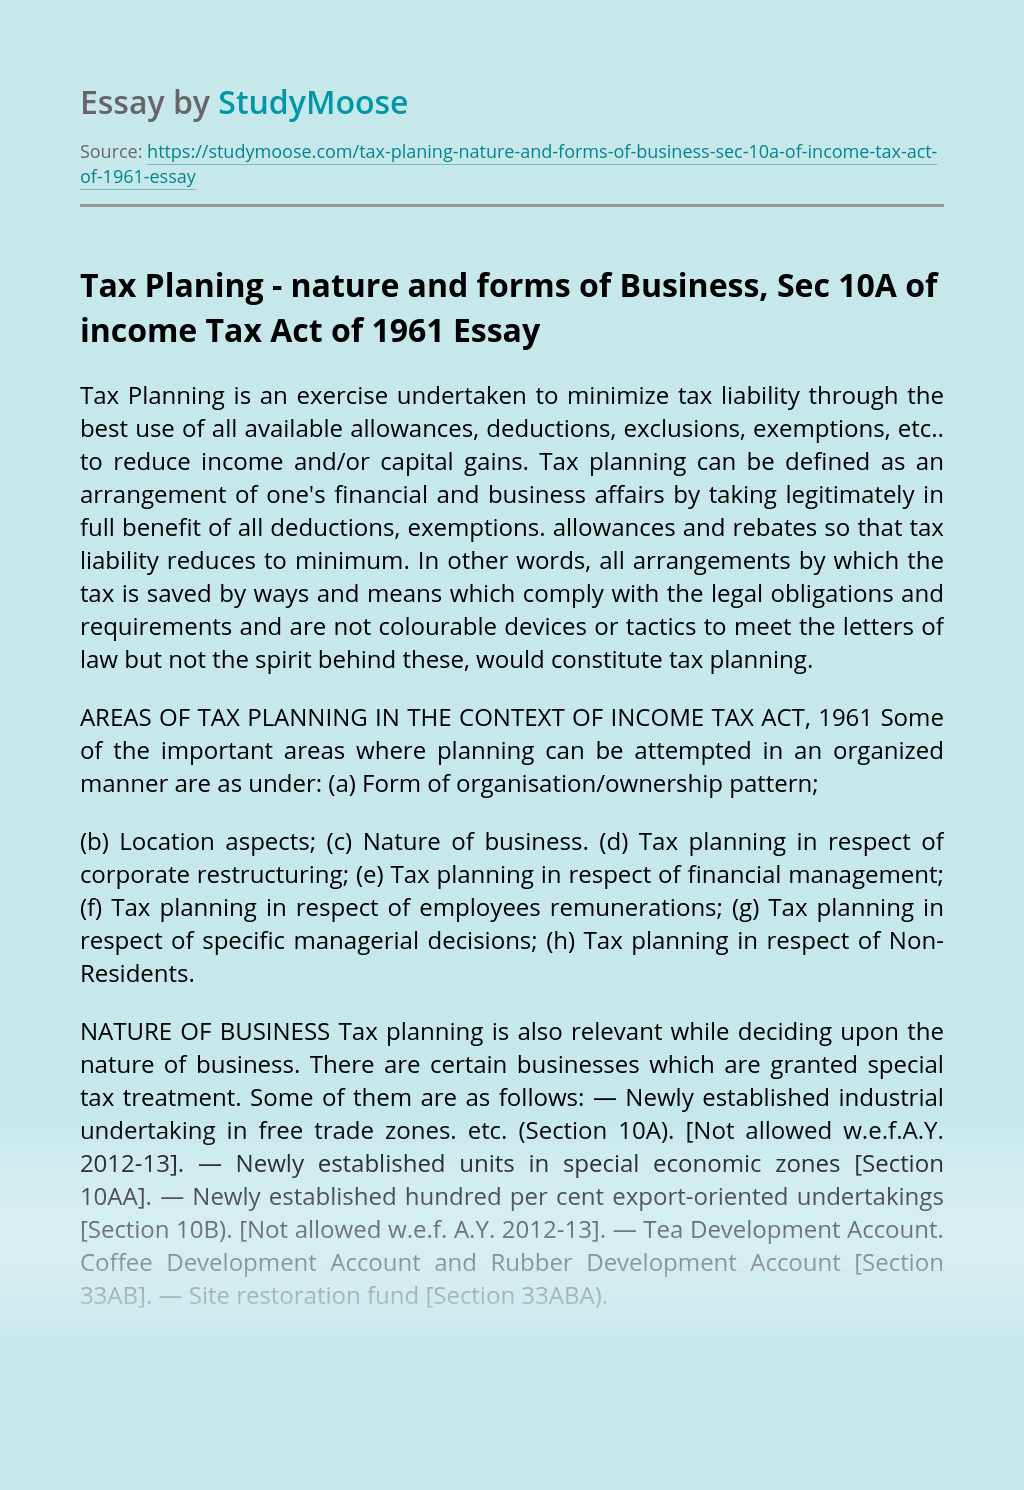 Tax Planing - nature and forms of Business, Sec 10A of income Tax Act of 1961